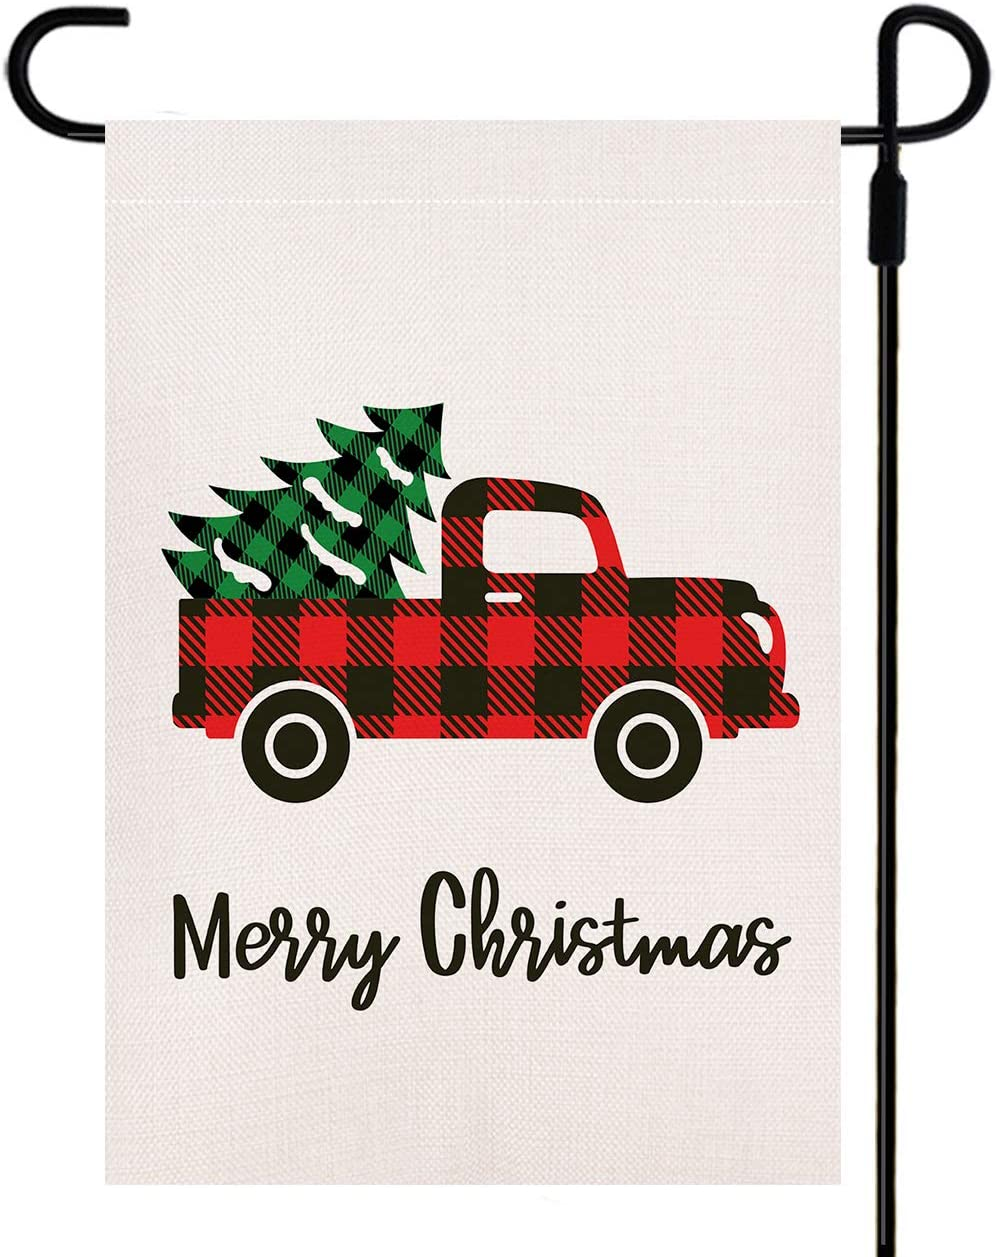 Yileqi Merry Christmas Garden Flag with Buffalo Check Red Truck and Vintage Tree, Double Sided Burlap Home Xmas Yard Flag for Outside Decor 12.5 x 18 Inches Small Flag for Winter Outdoor Decoration